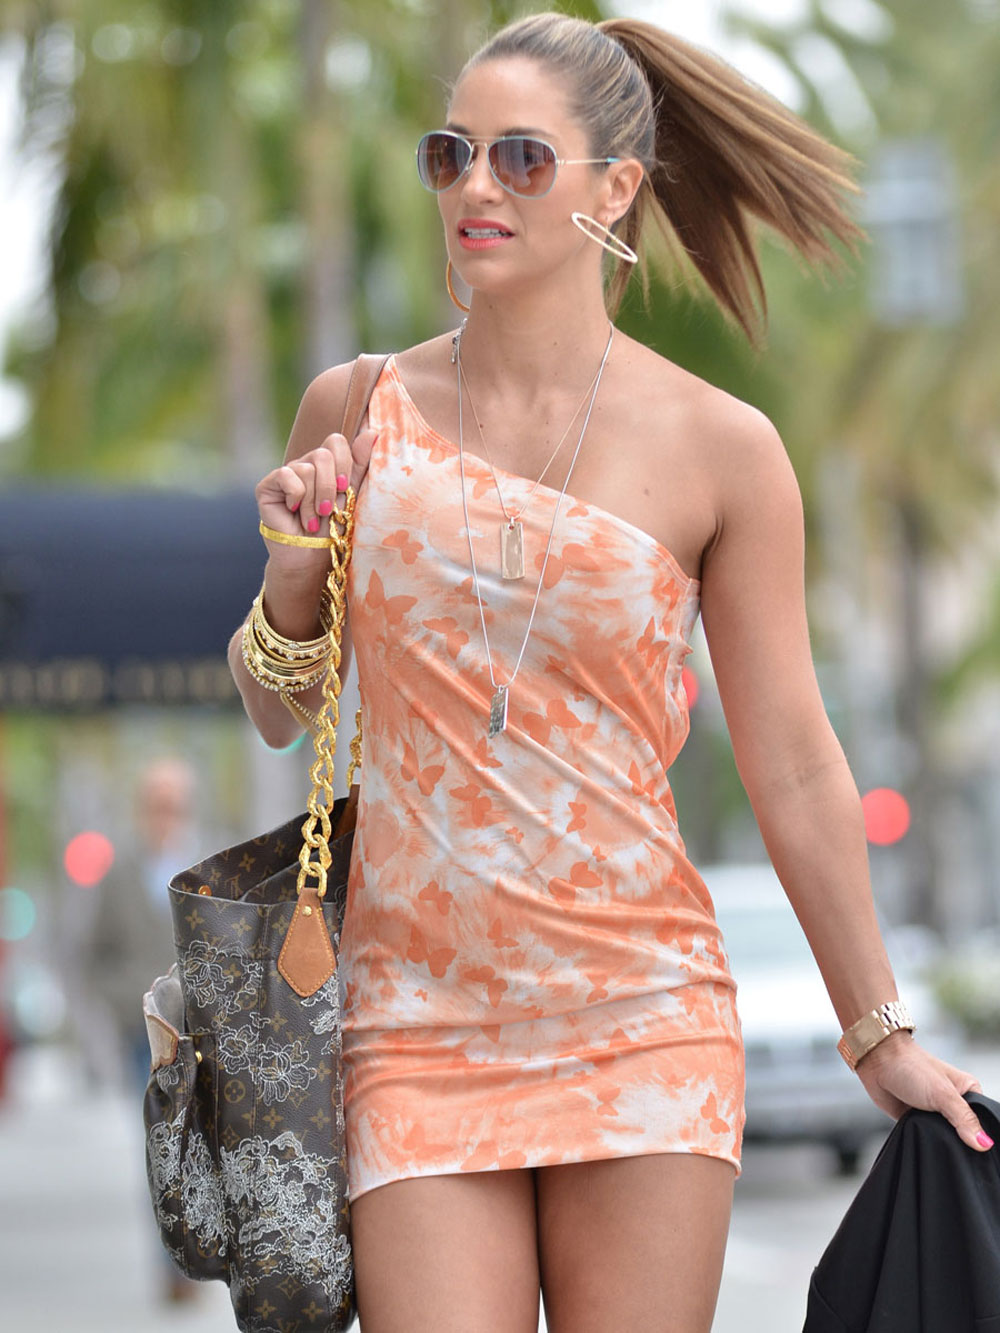 Jennifer Nichole Lee in Leggy Candids out Shopping with hot sunglasses in Beverly Hills